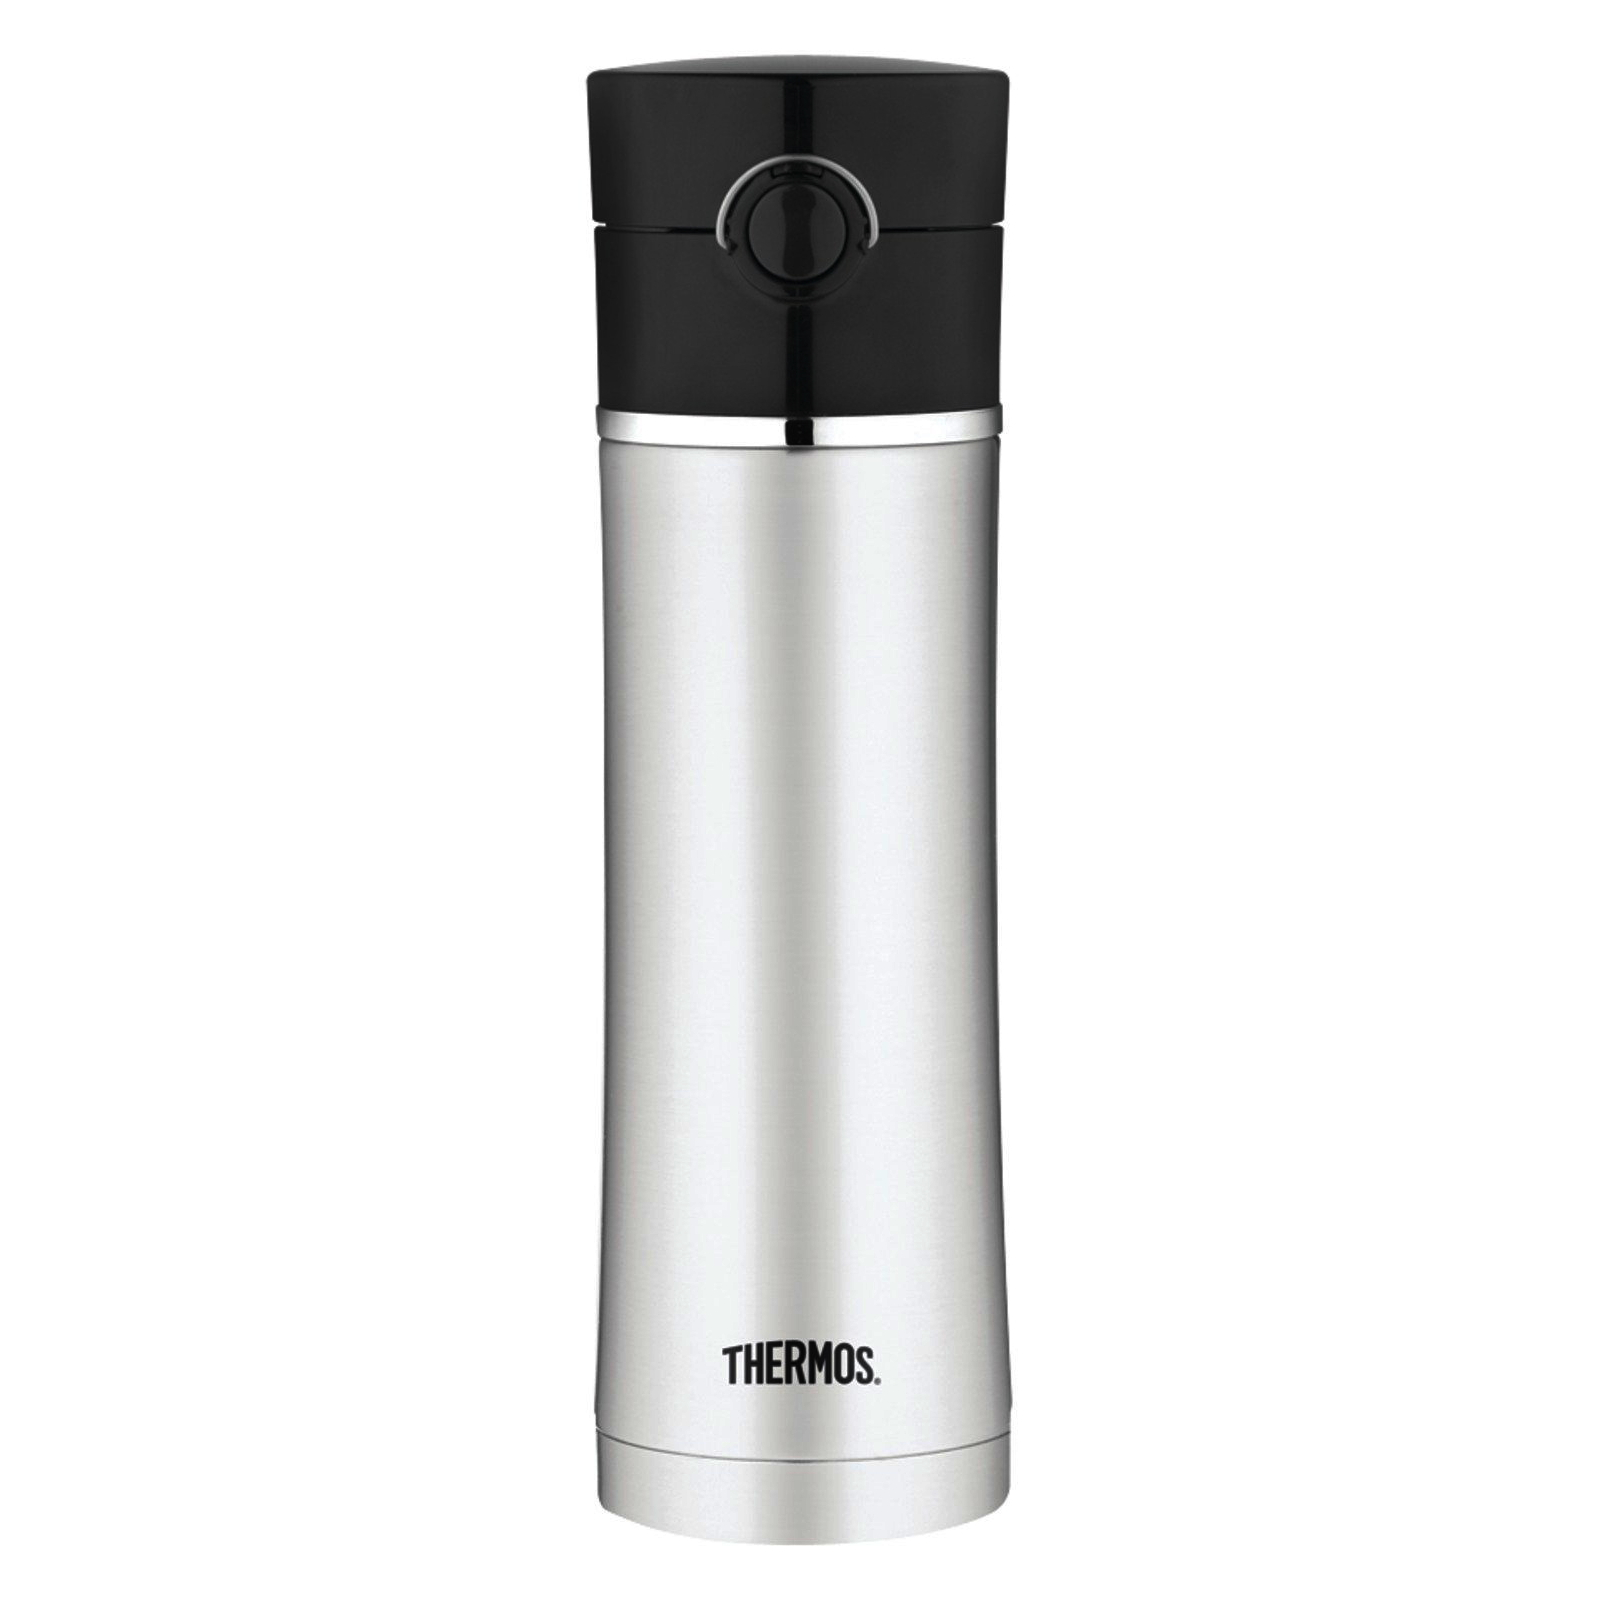 Thermos Sipp Stainless Steel Vacuum Insulated 16 Ounce Drink Bottle with Black Lid